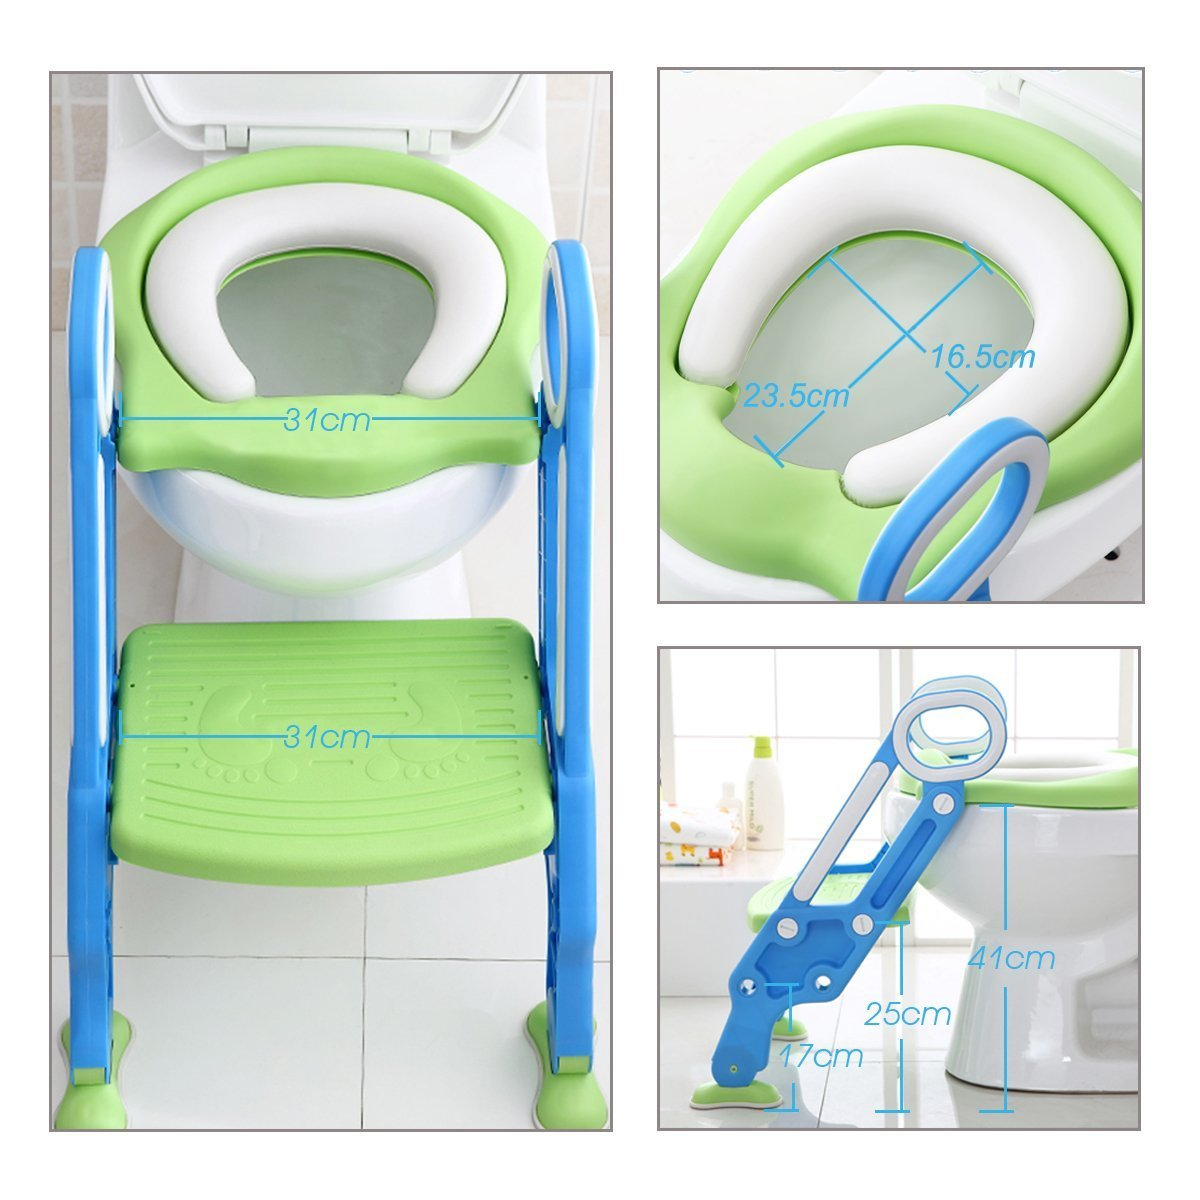 Potty Toilet Trainer Seat with Step Stool Ladder Adjustable Baby Toddler Kid Potty Toilet Seat for Boy and Girl Children's Toilet Training Seat Chair by Mangohood (Image #5)